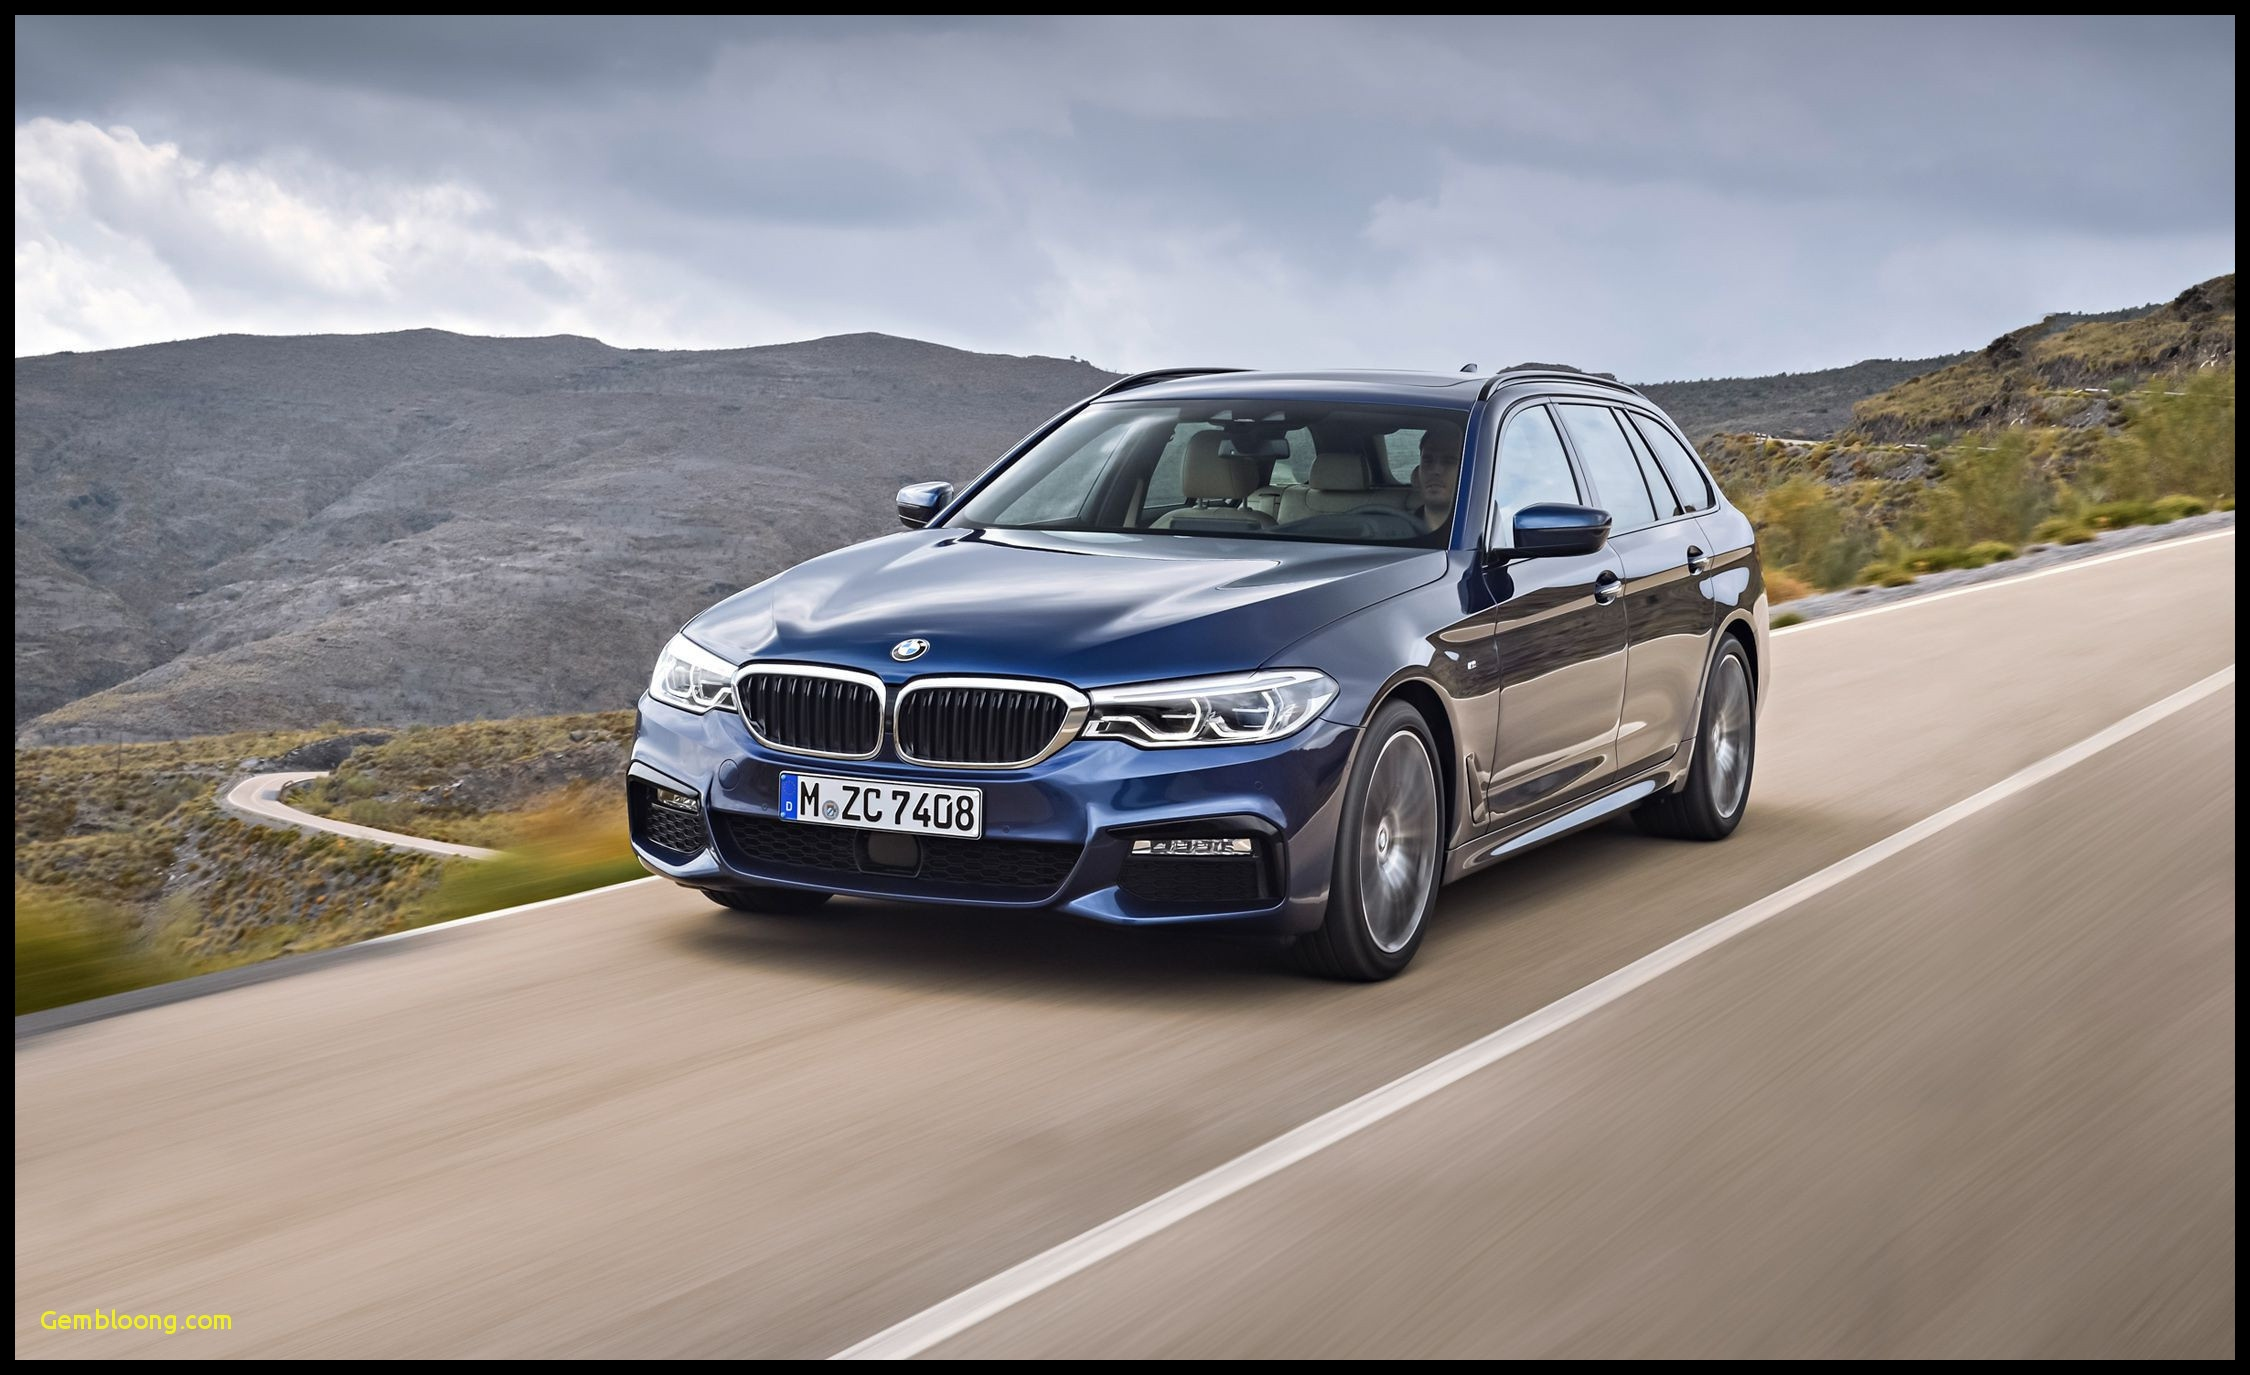 2018 Bmw 530i 0 60 Archives 2017 Bmw 530d Euro Spec Diesel First New Review